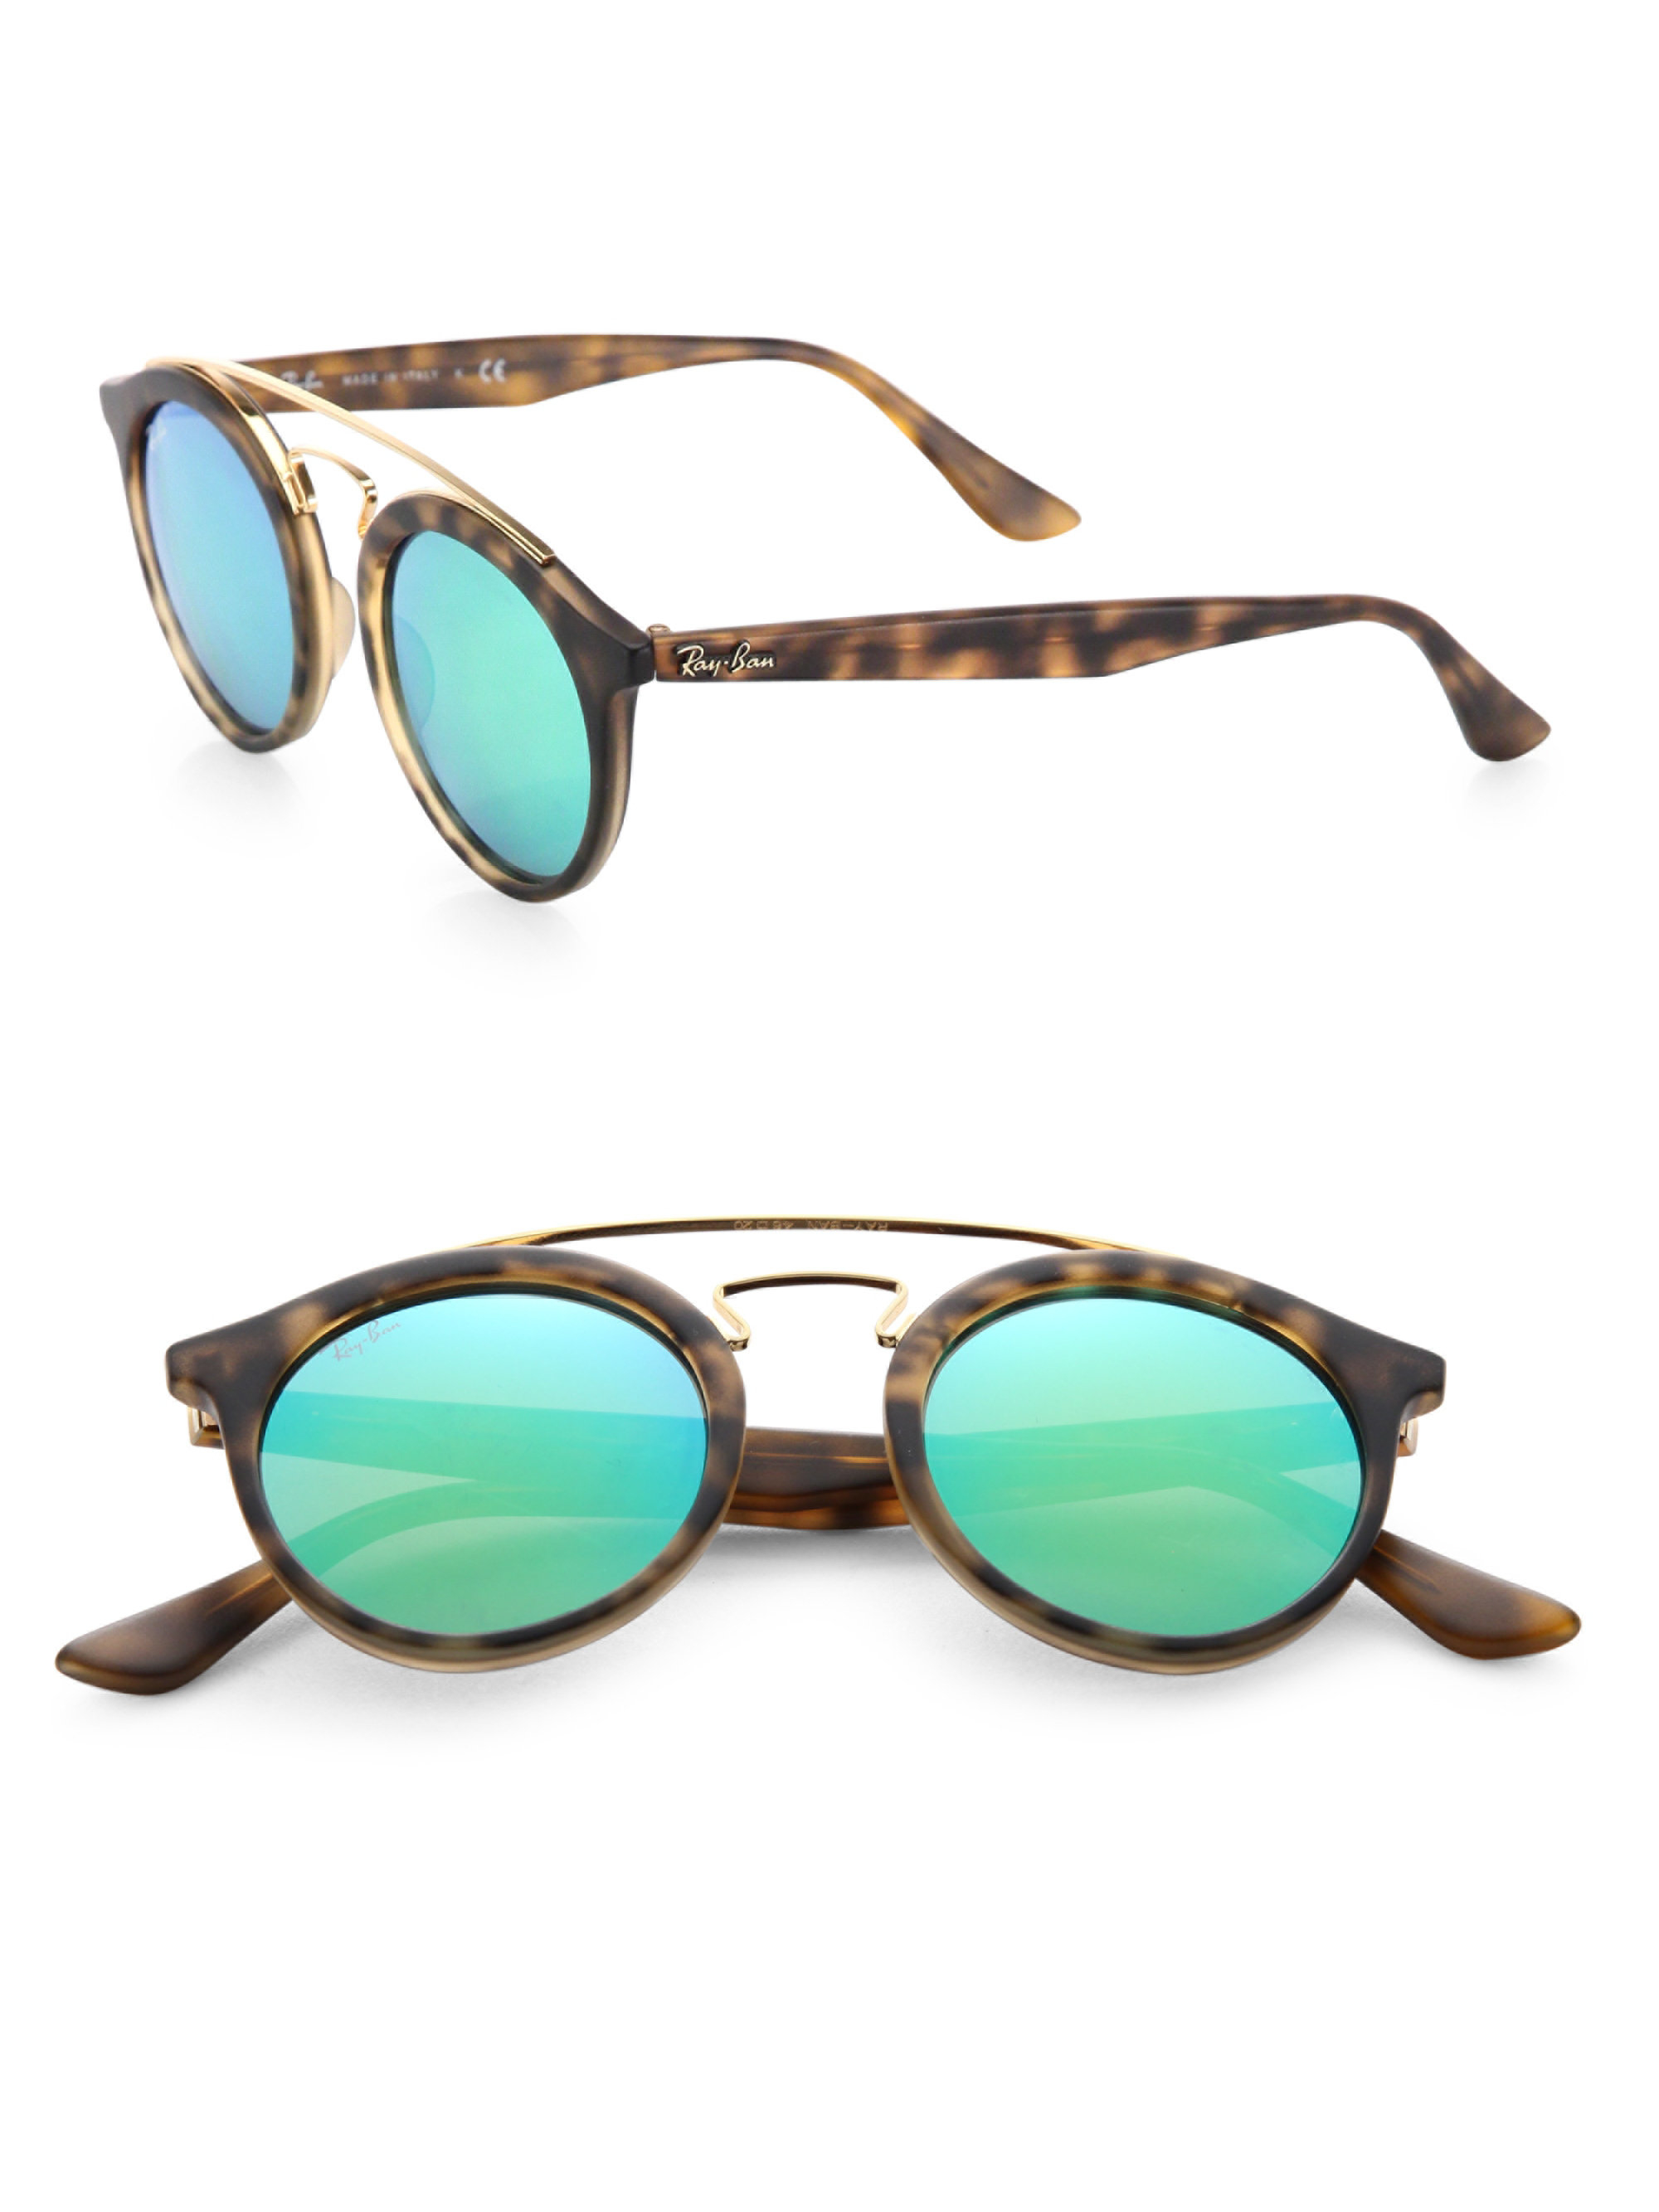 Ray Ban Prescription Mirrored Sunglasses Heritage Malta